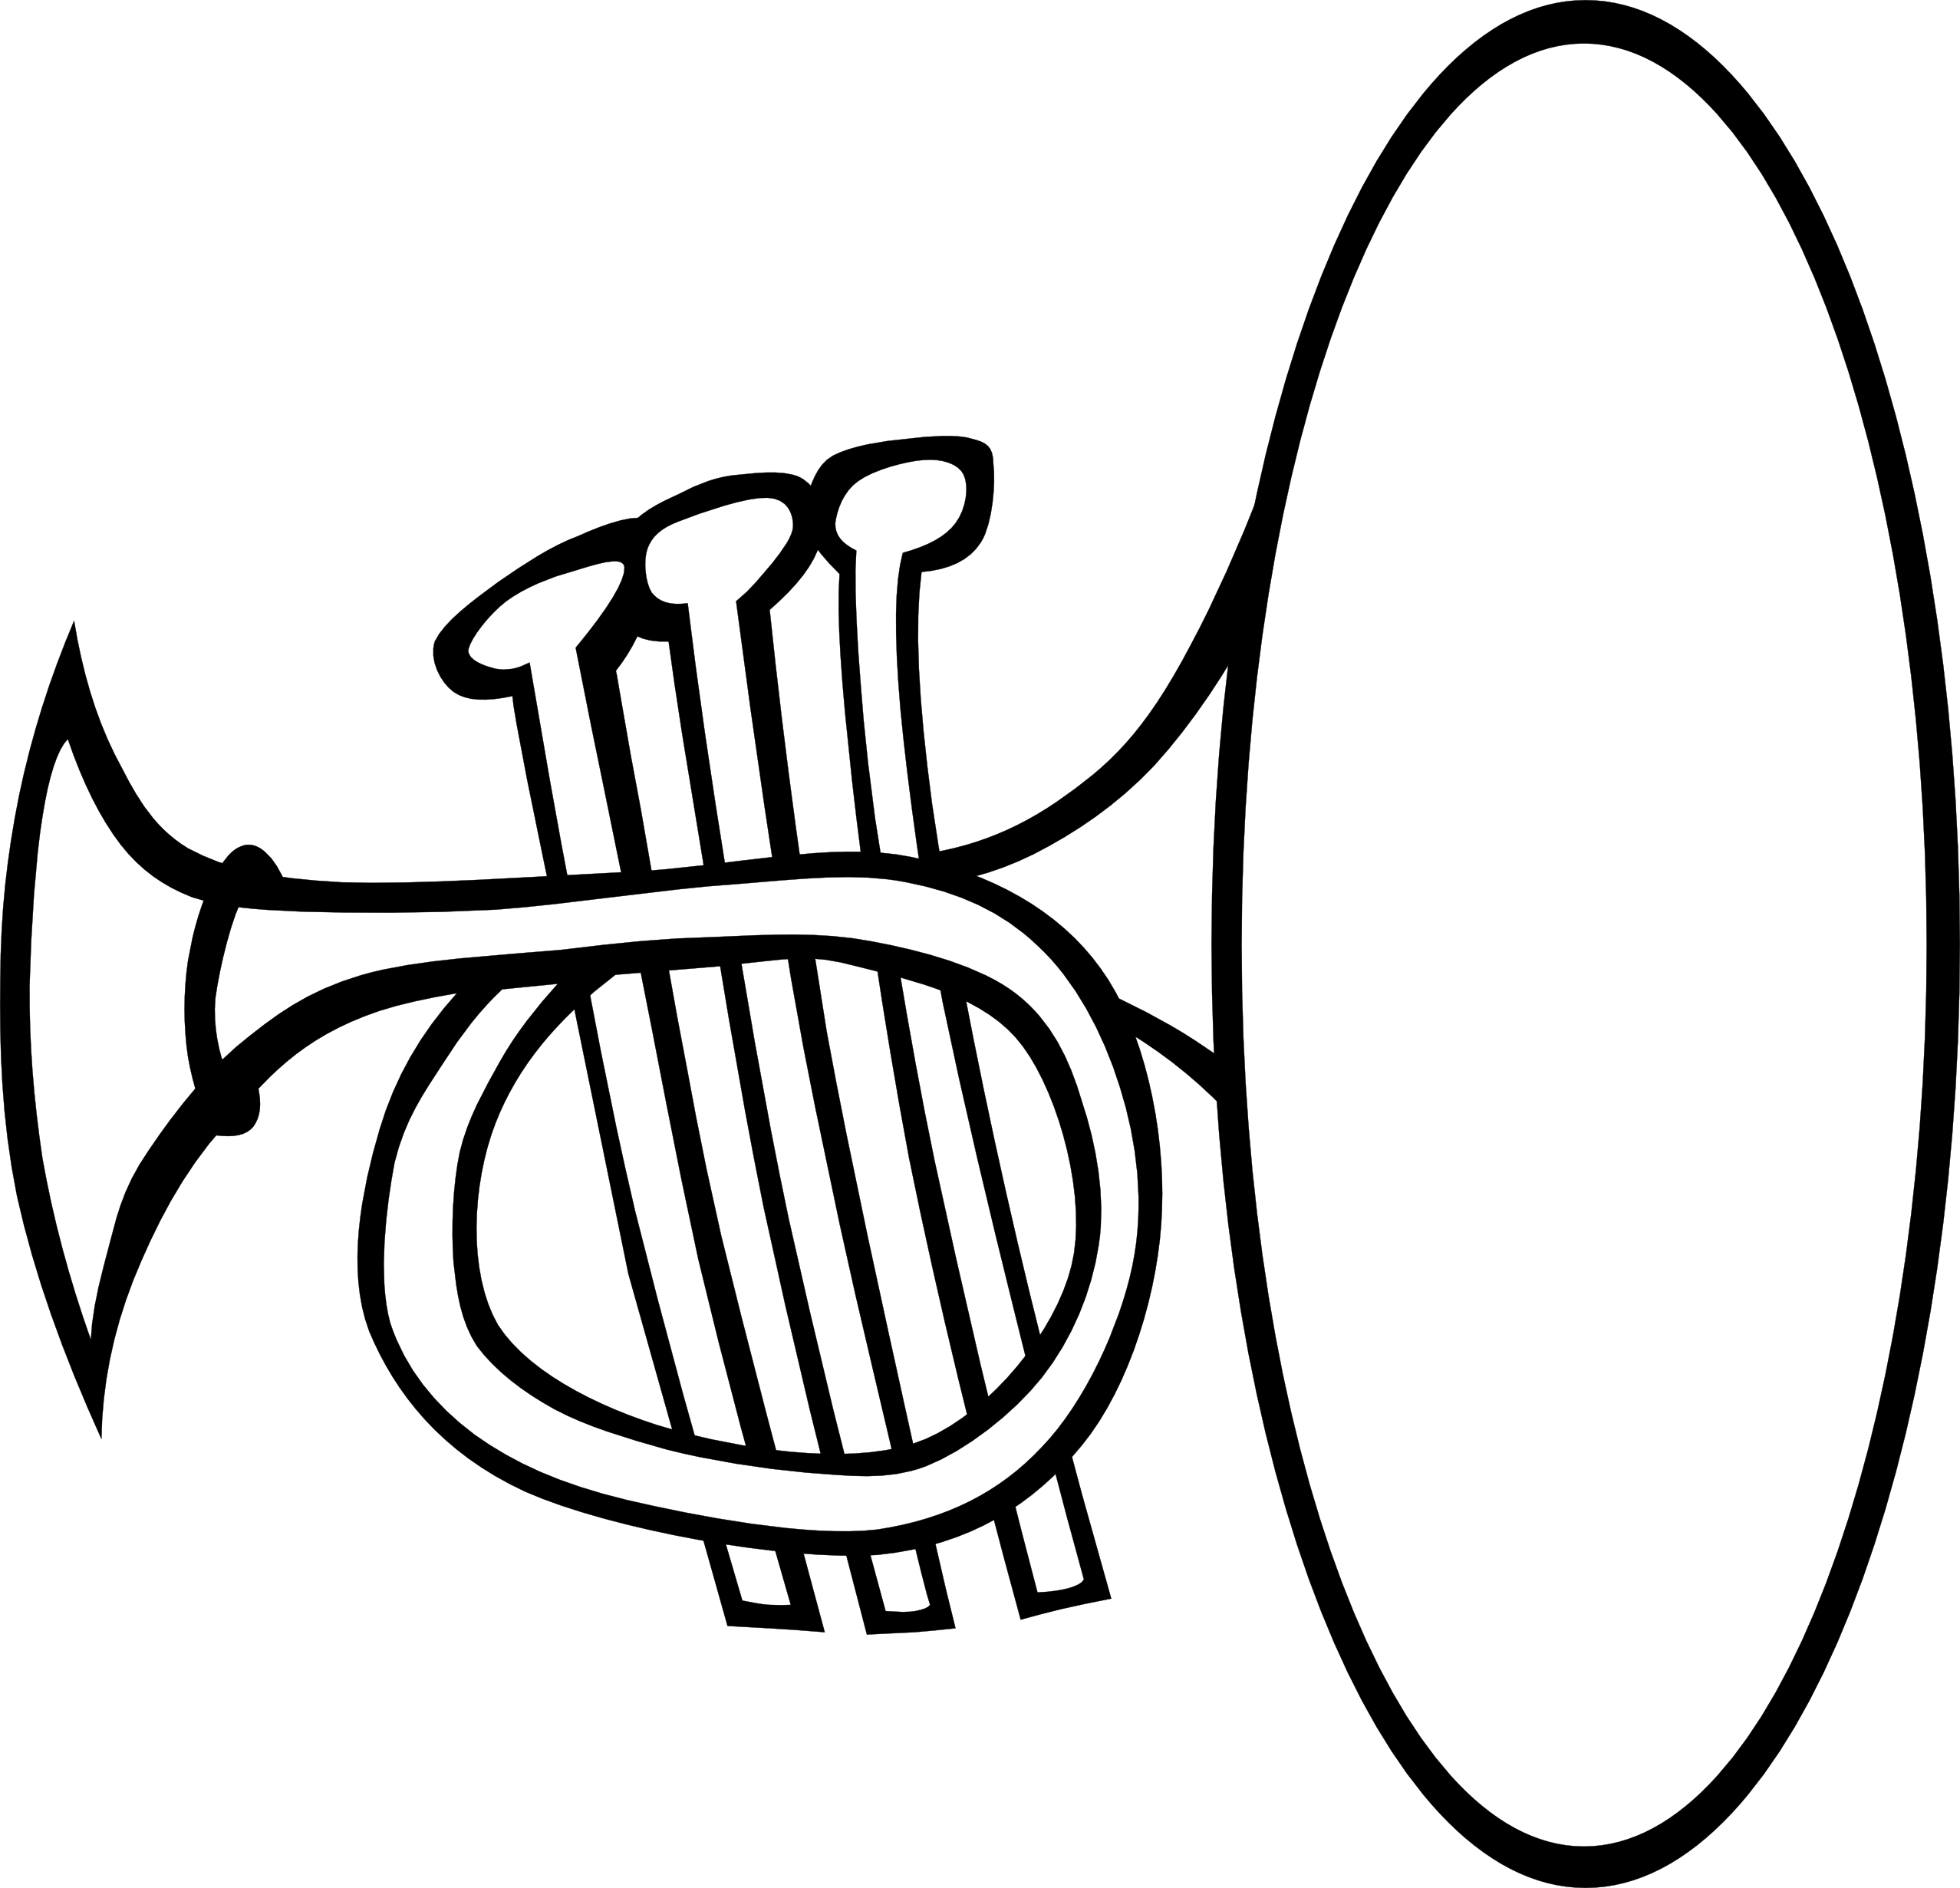 Clip Art: Silly Trumpet Bw Black White Line Art ... - ClipArt Best ...